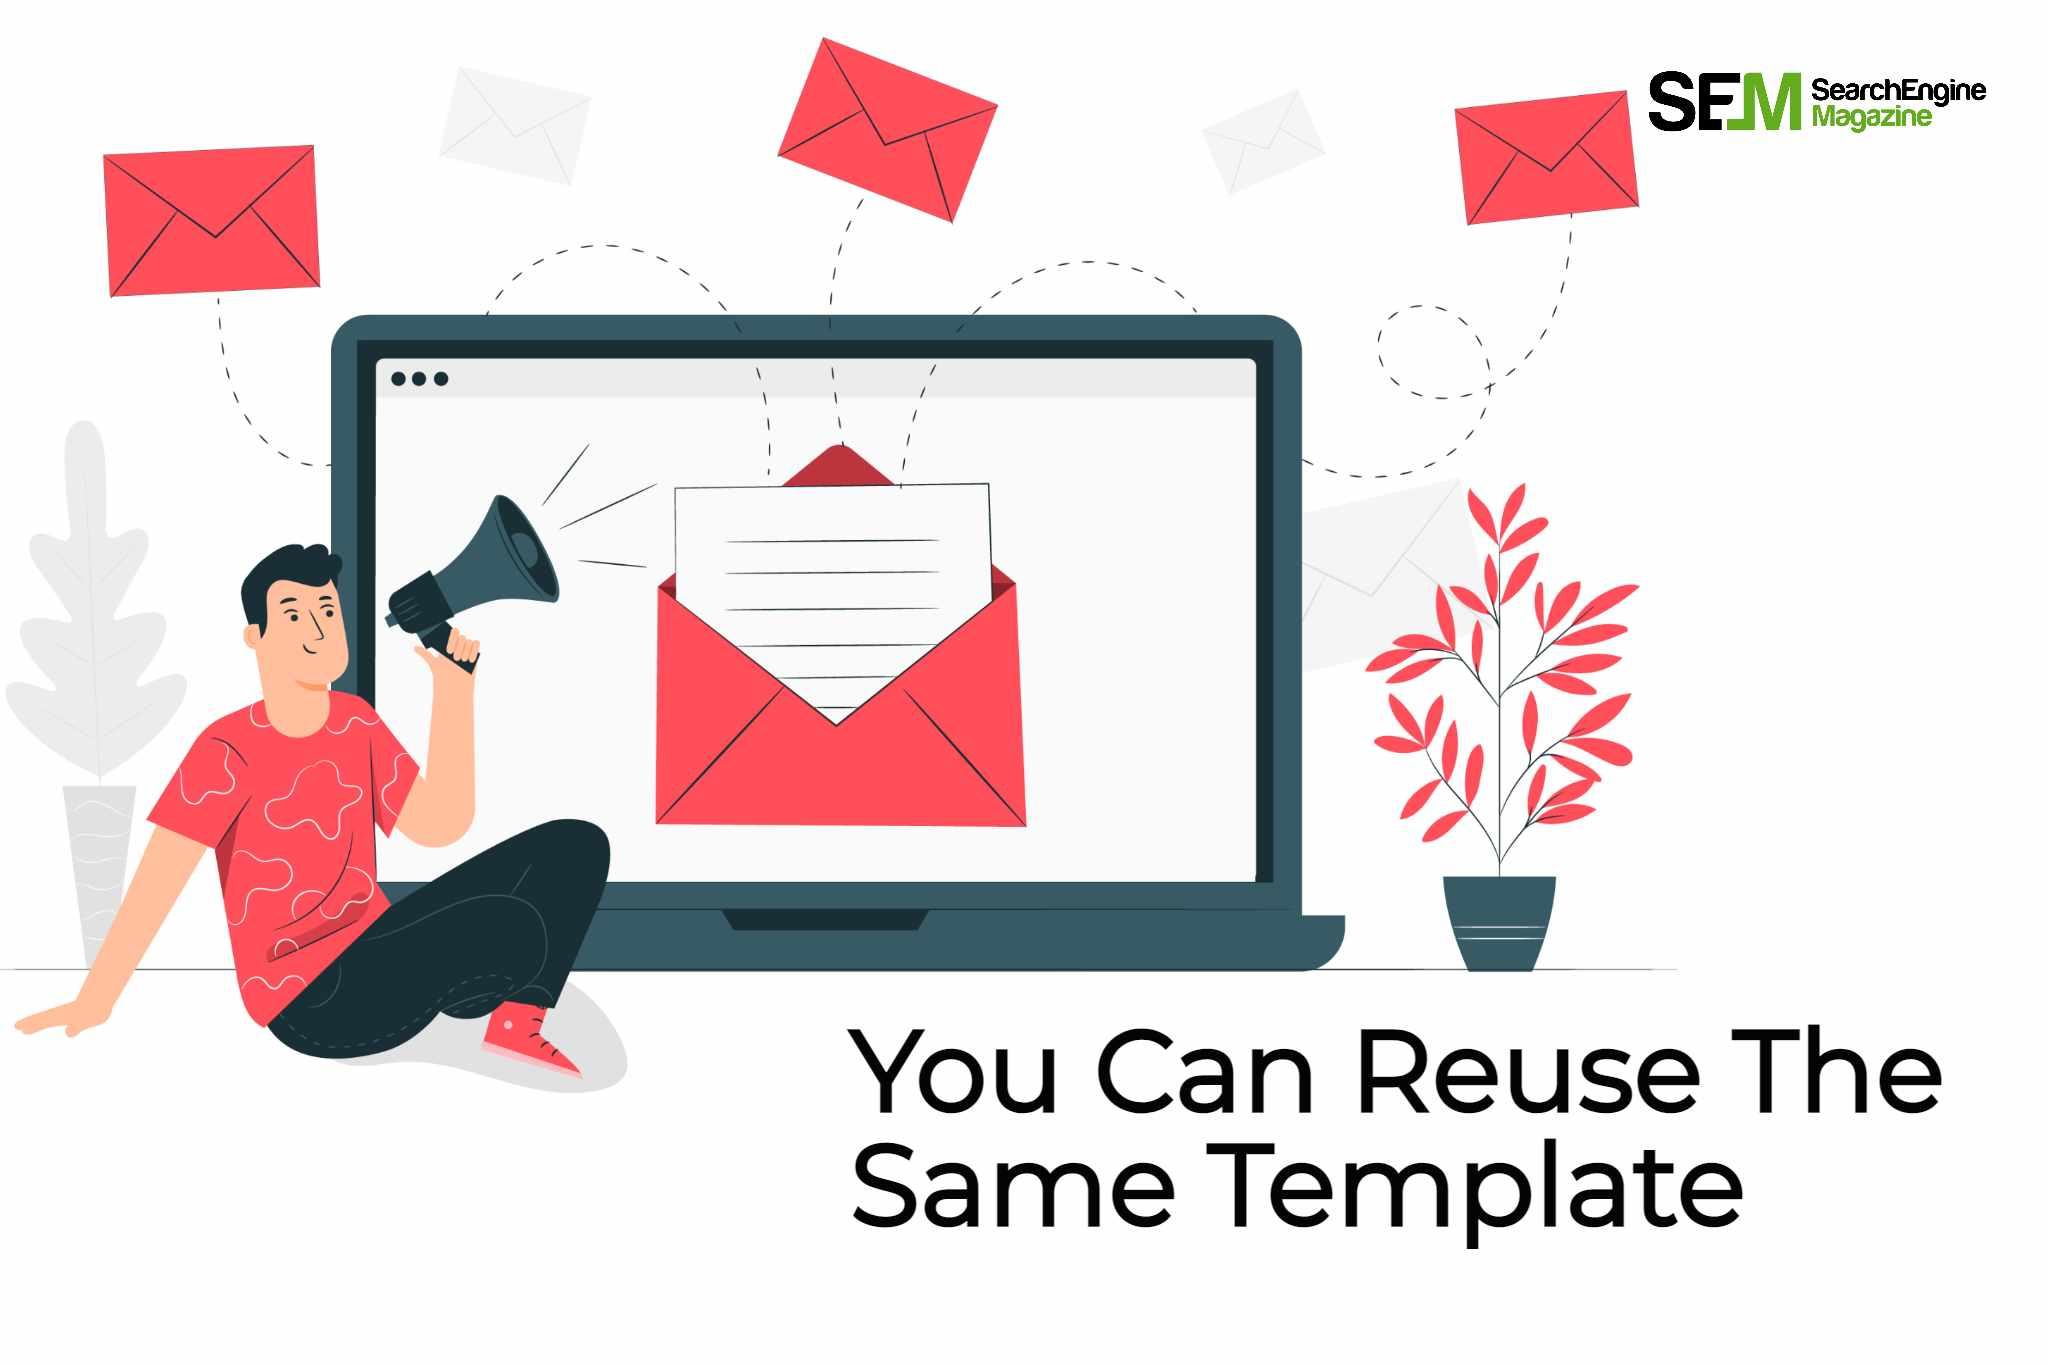 What is one of the benefits of using templates for your email marketing campaigns?